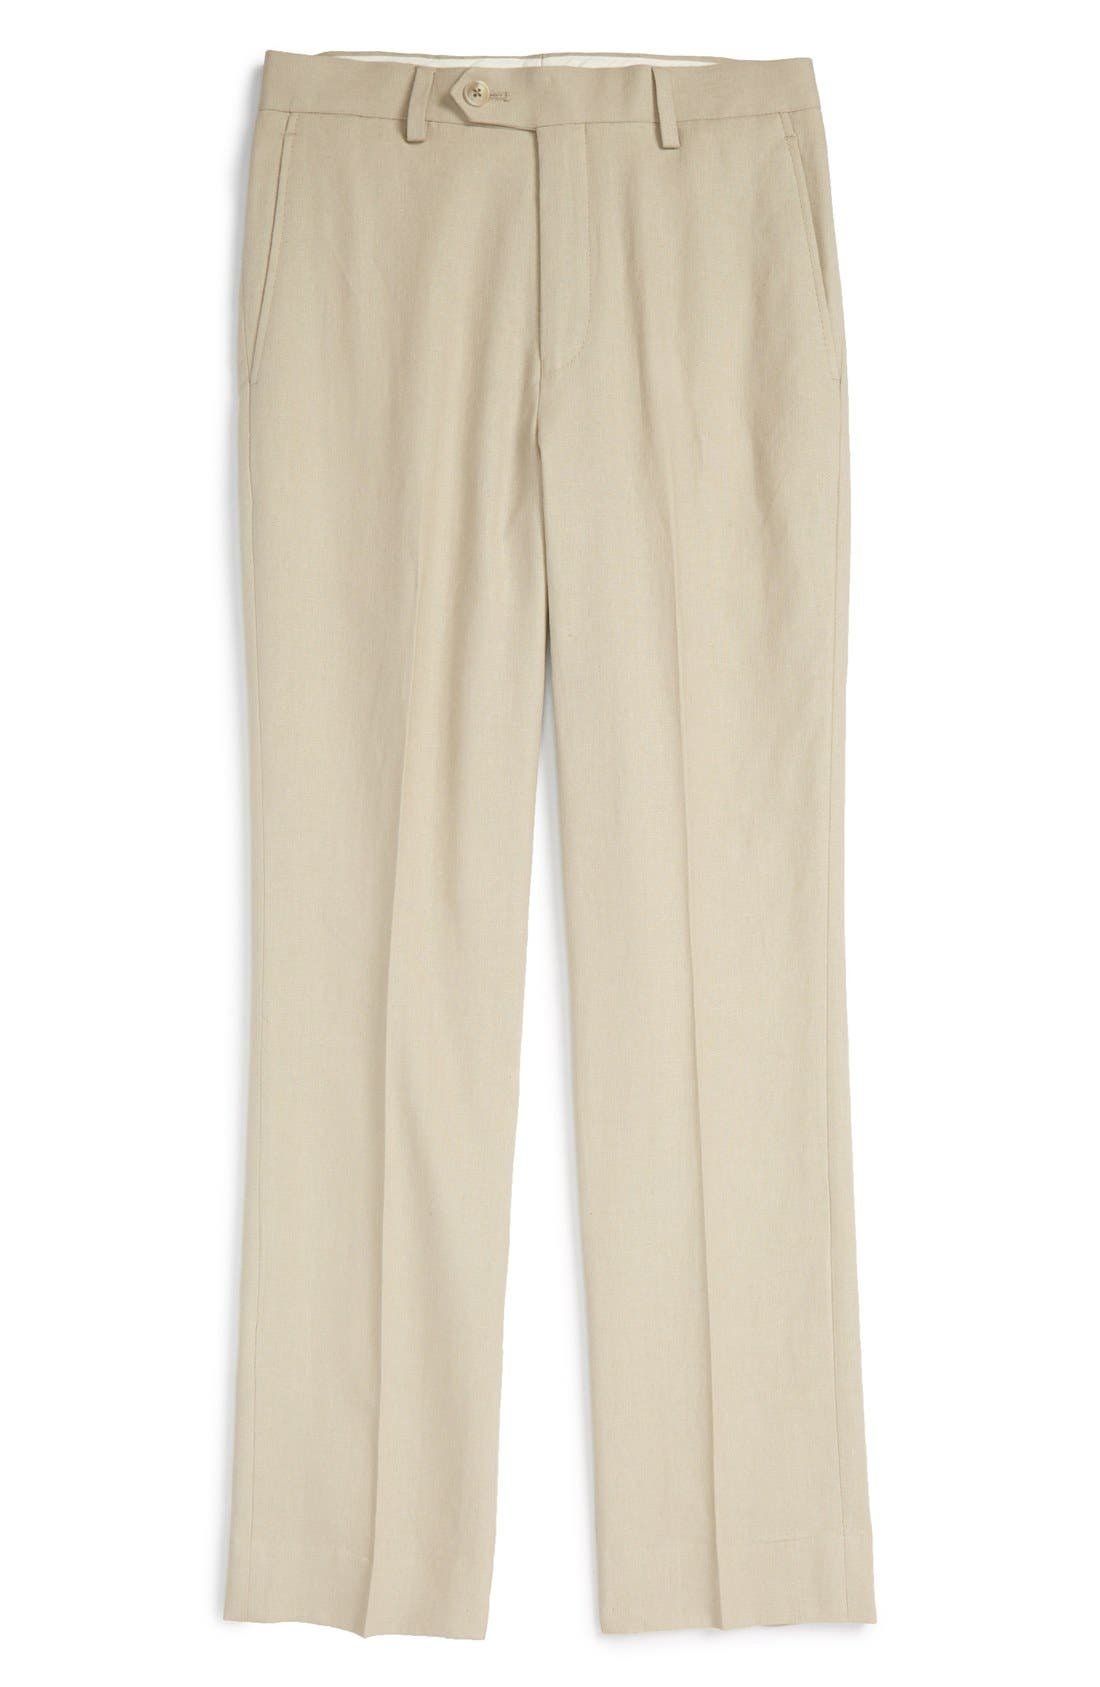 'Kirton' Flat Front Linen Blend Trousers,                             Main thumbnail 1, color,                             284